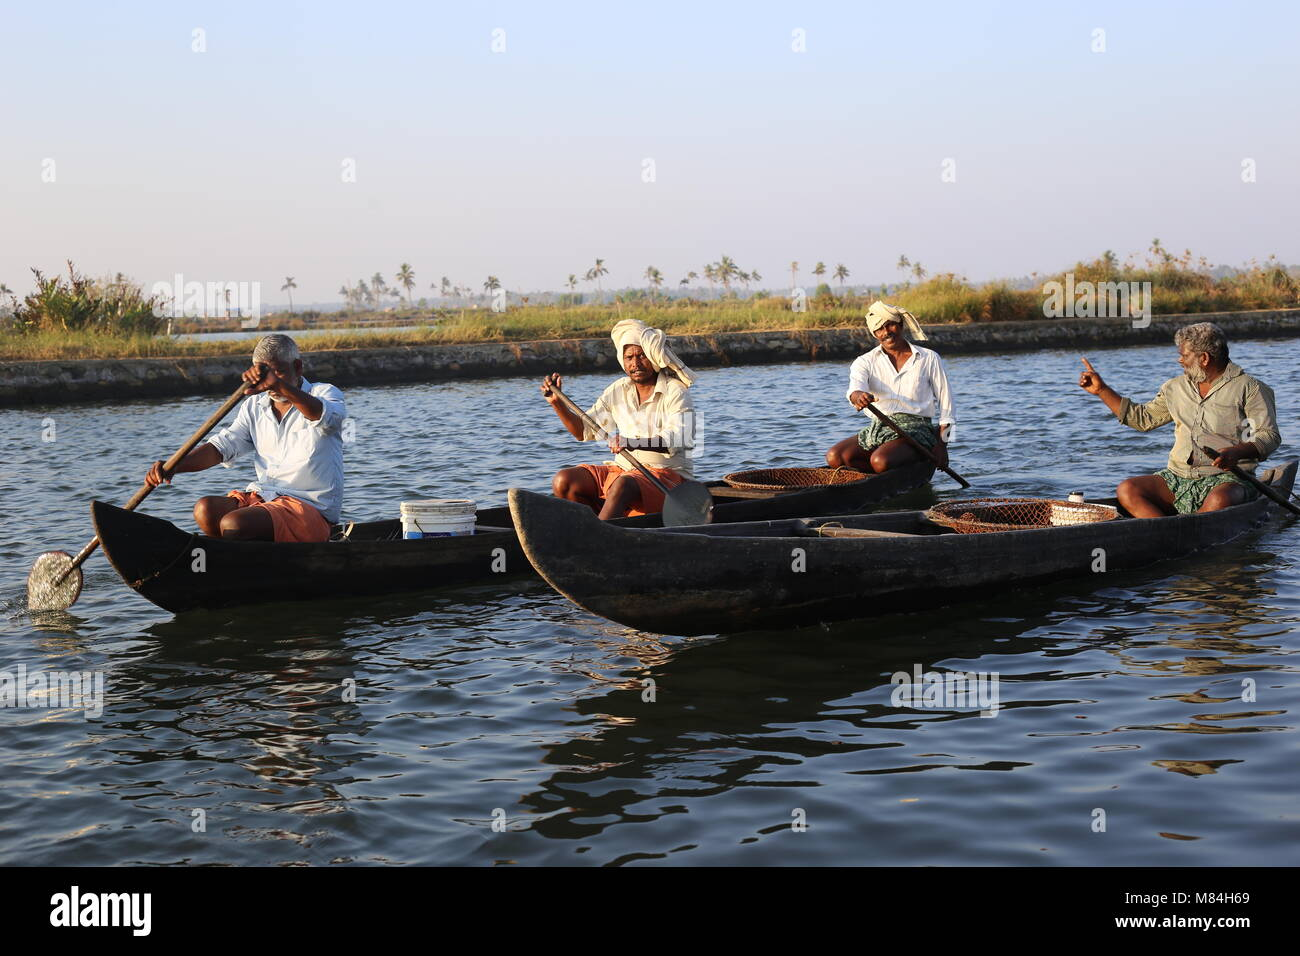 Go hunting stock photos go hunting stock images alamy for Hunting and fishing times